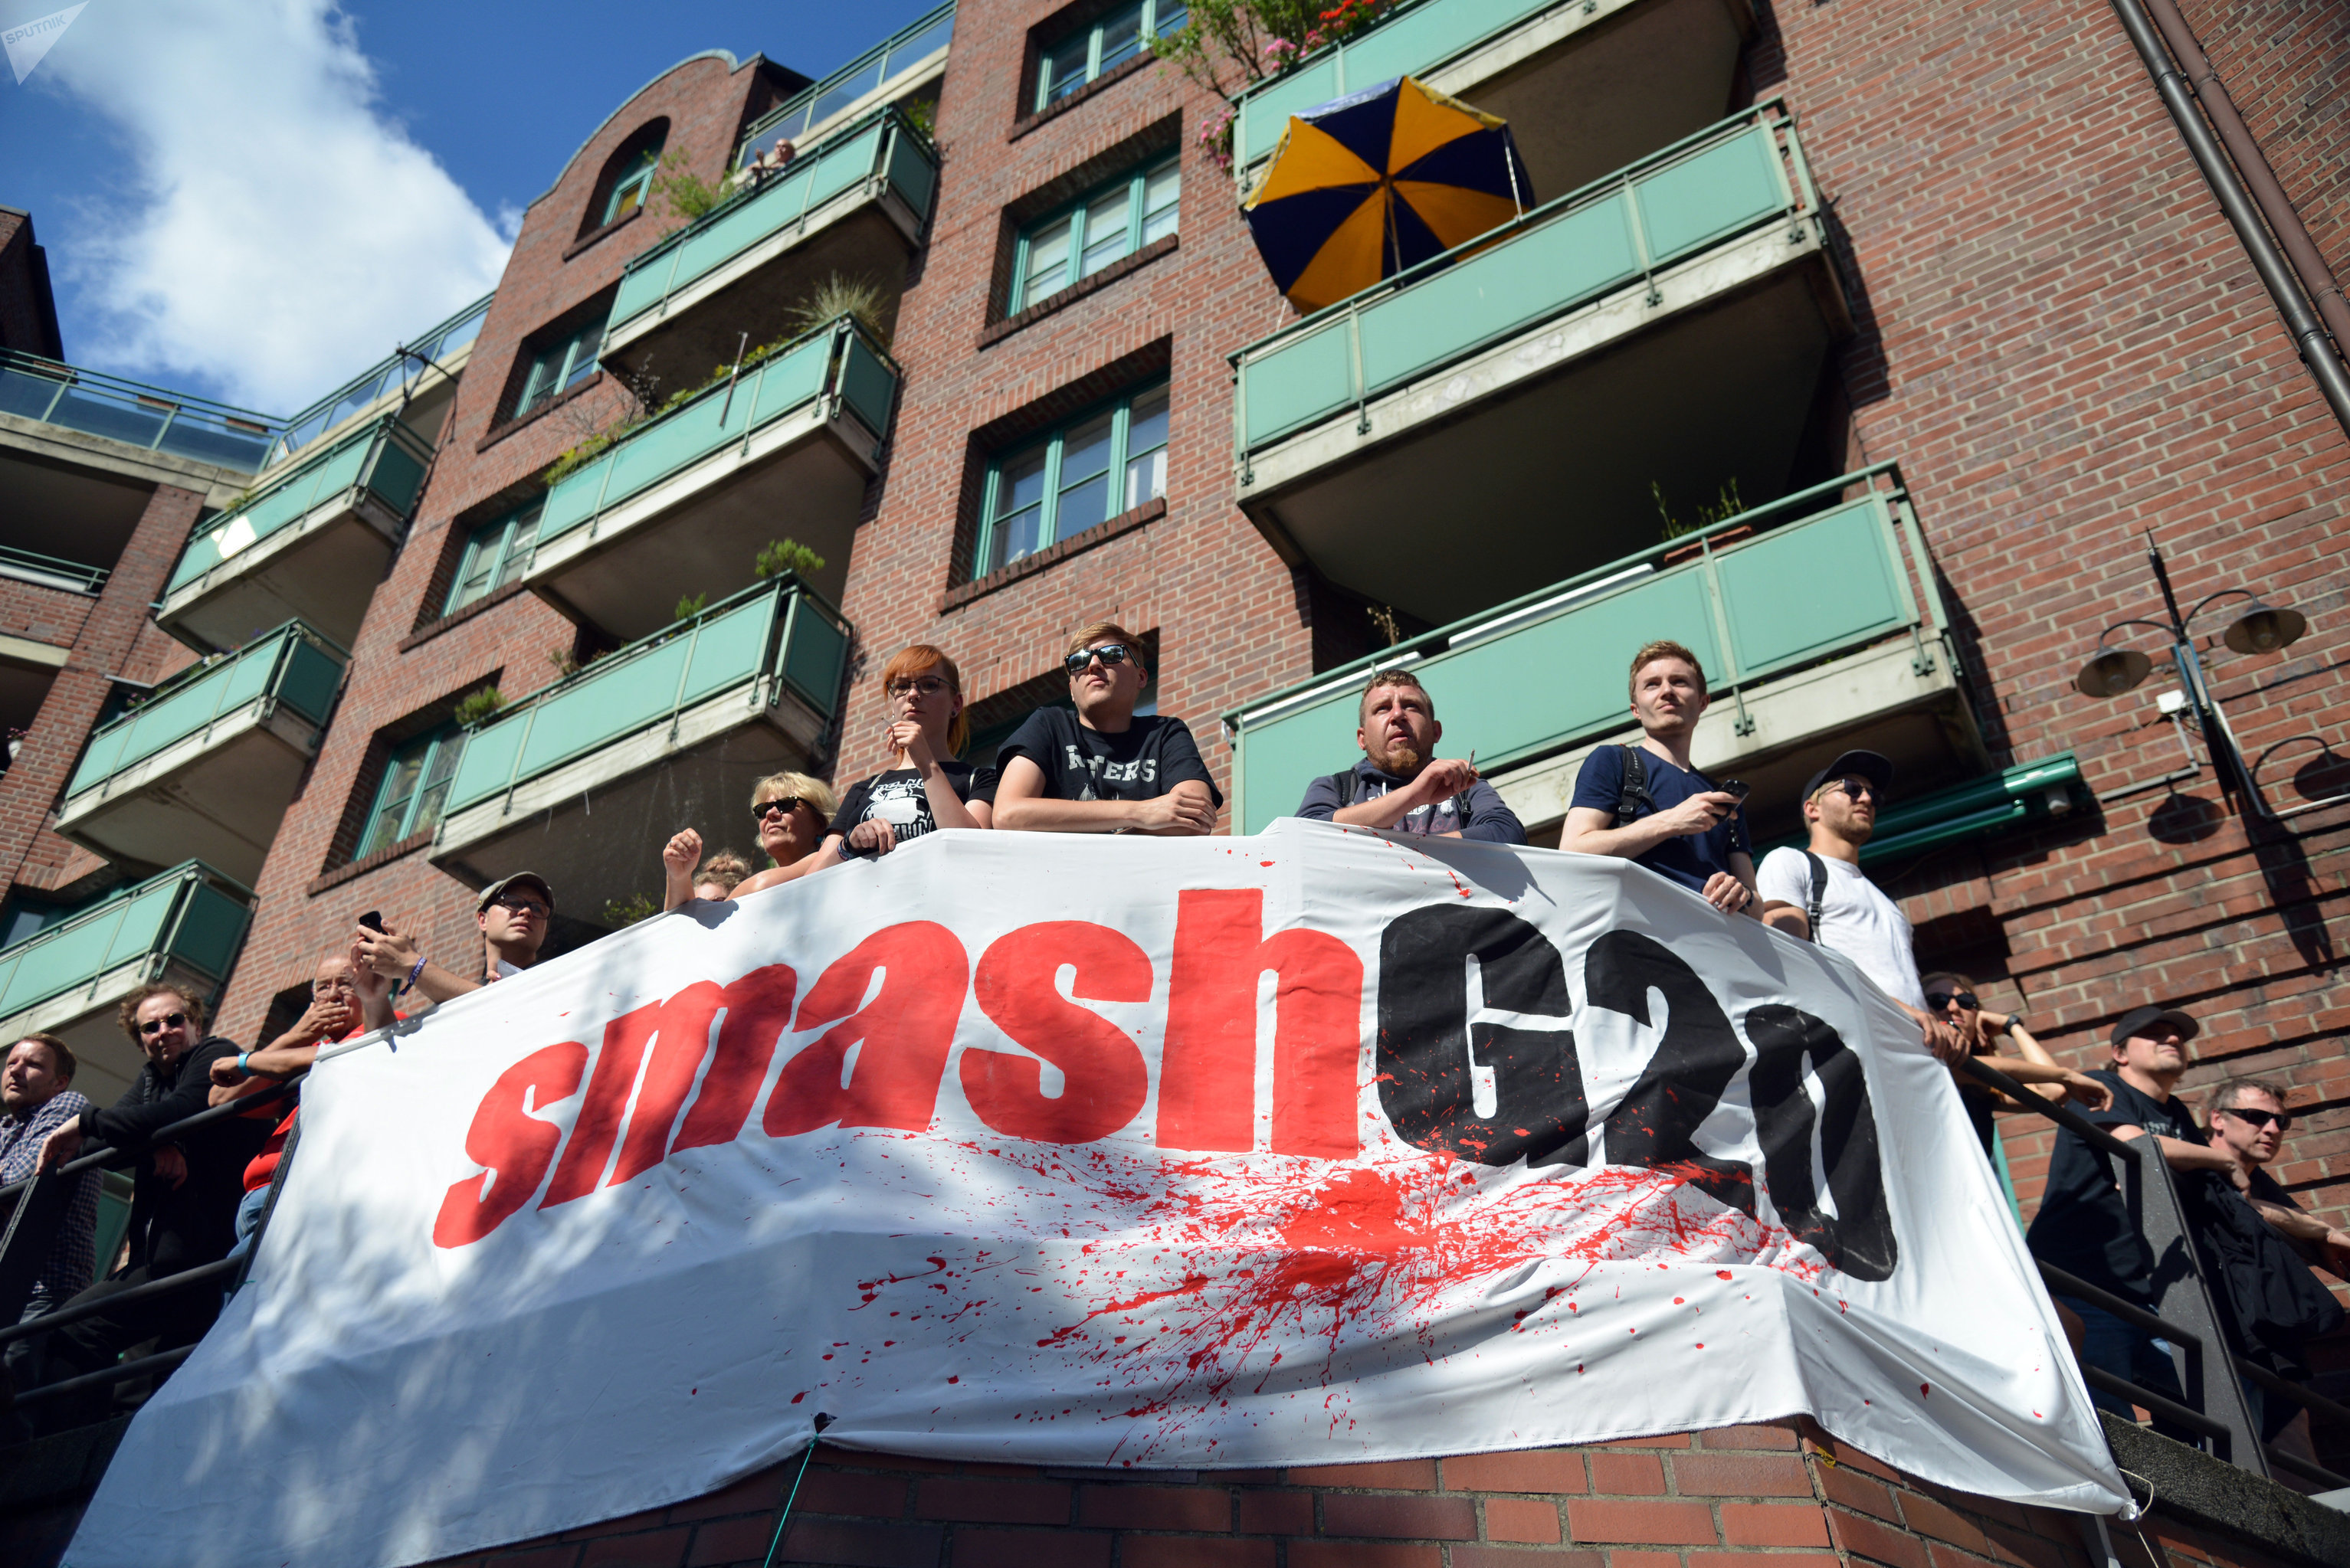 Participants in the protest rally ahead of the G20 Summit In Hamburg